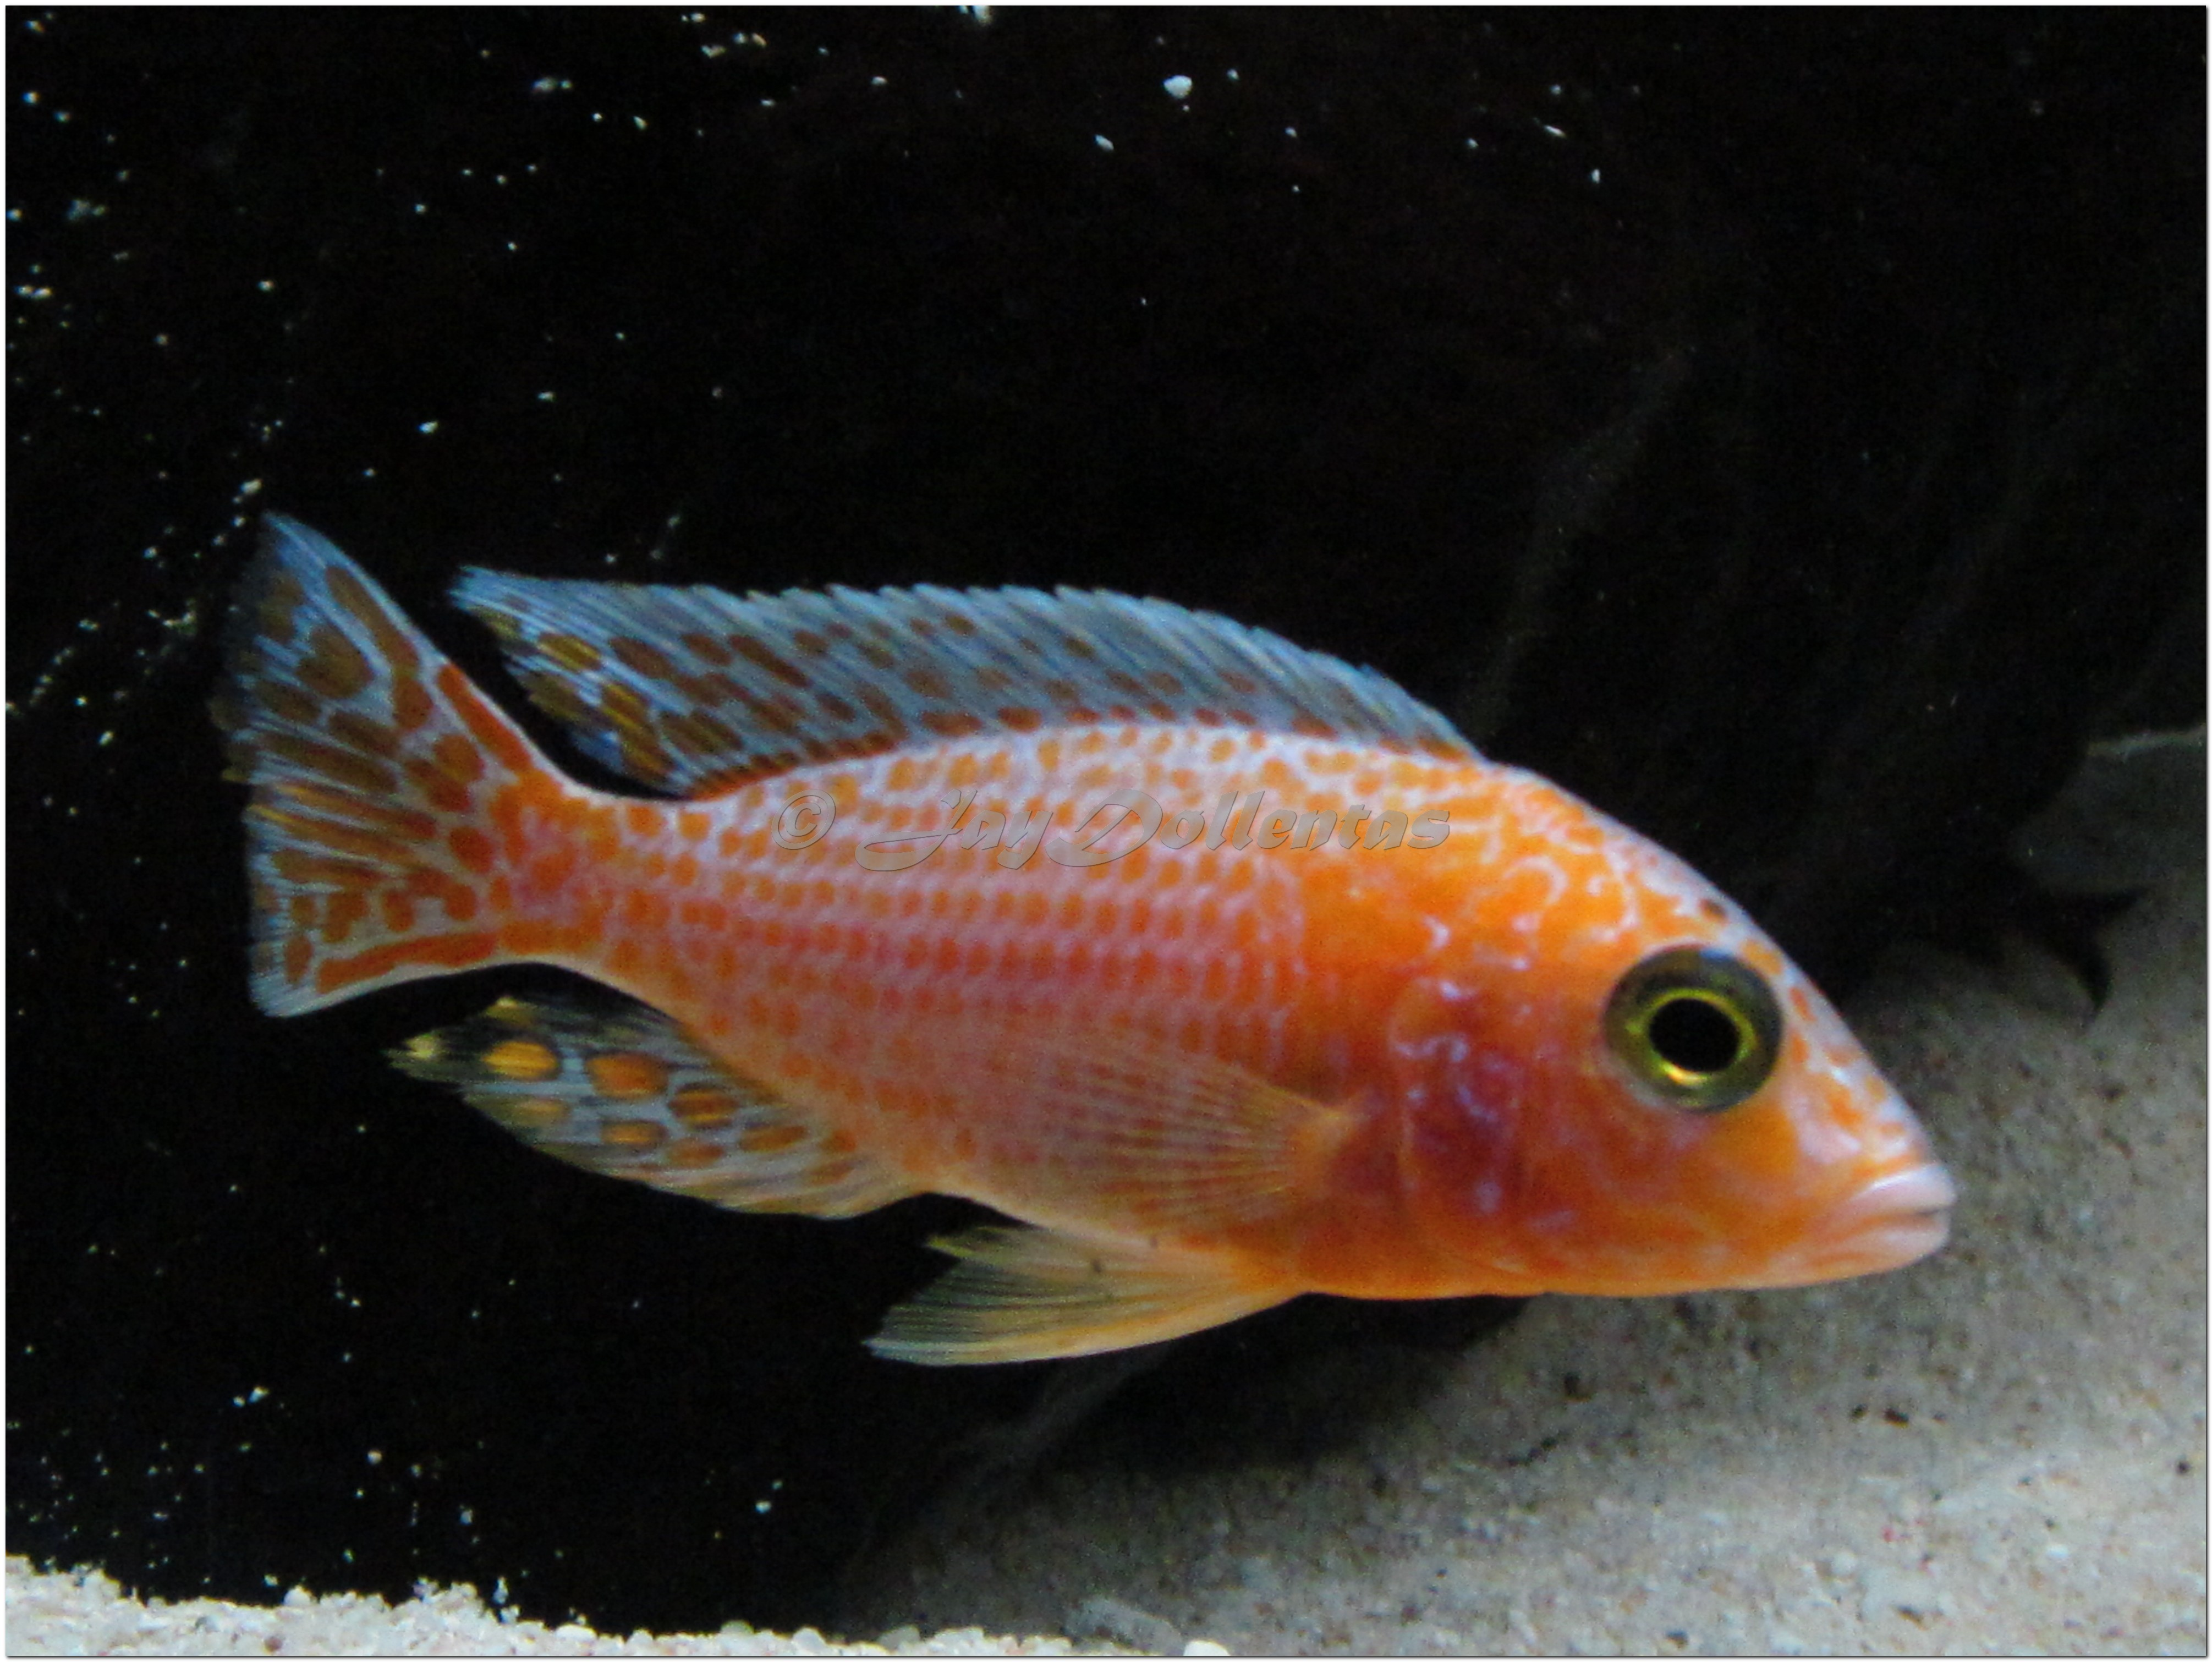 cichlids.com: Strawberry peacock